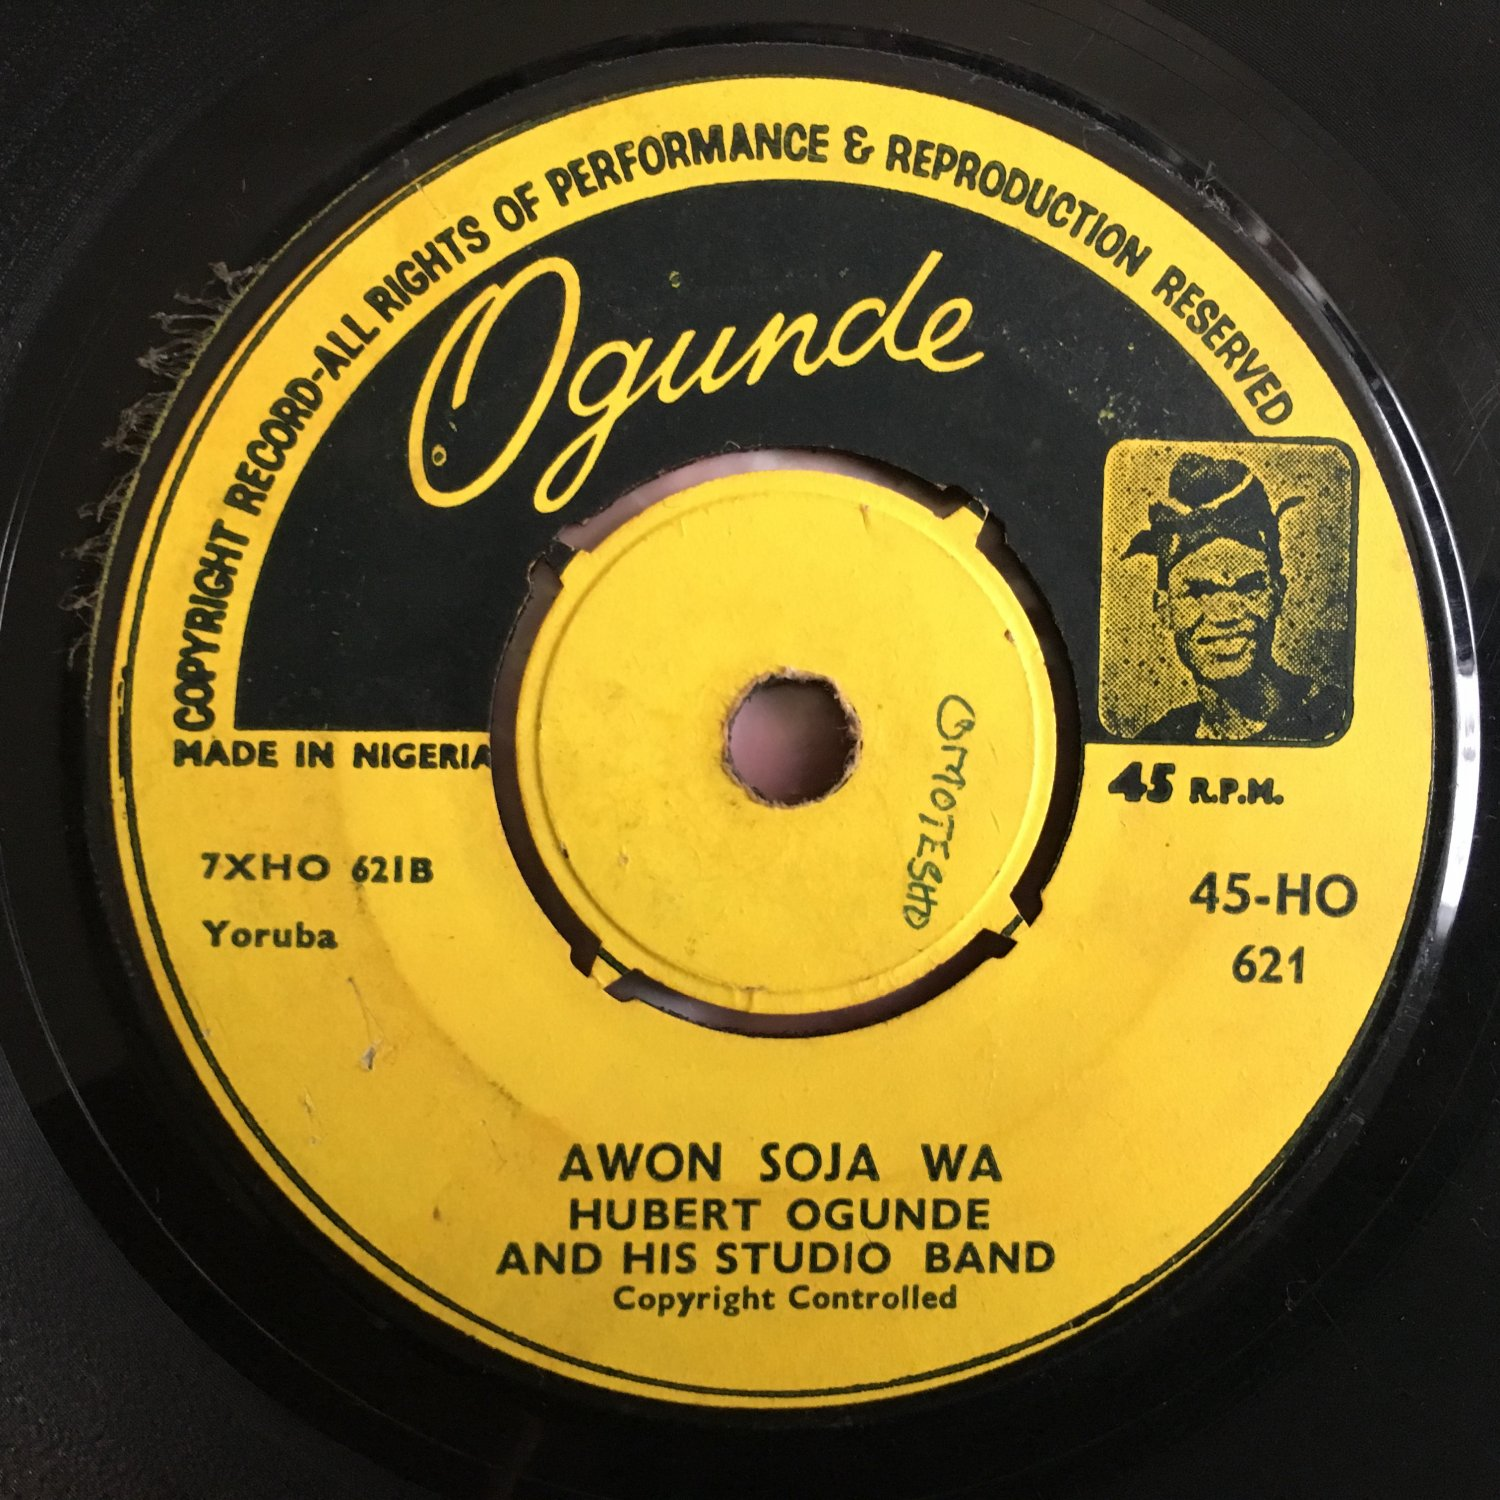 HUBERT OGUNDE & HIS STUDIO BAND 45 awon soja wa - keep Nigeria one NIGERIA HIGHLIFE mp3 LISTEN